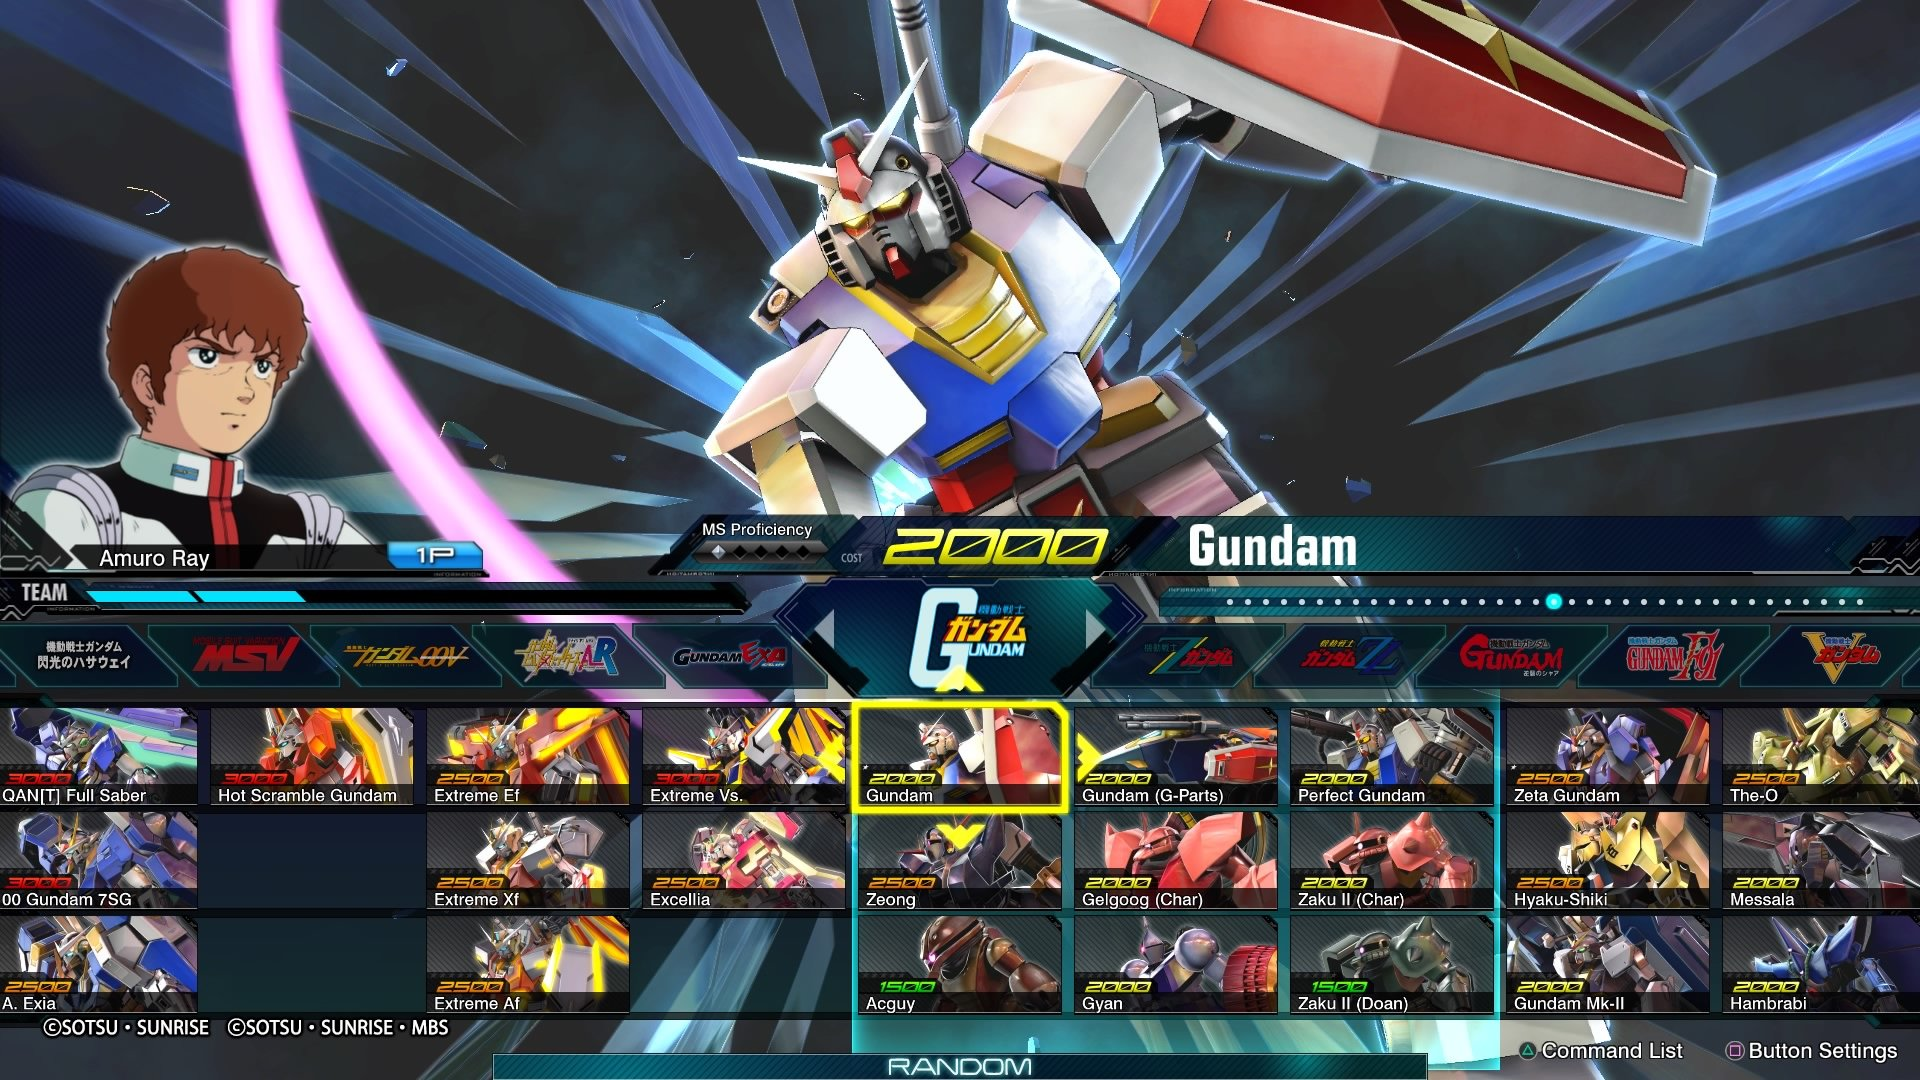 Mobile Suit Gundam Extreme Vs. Maxiboost On PS4 review